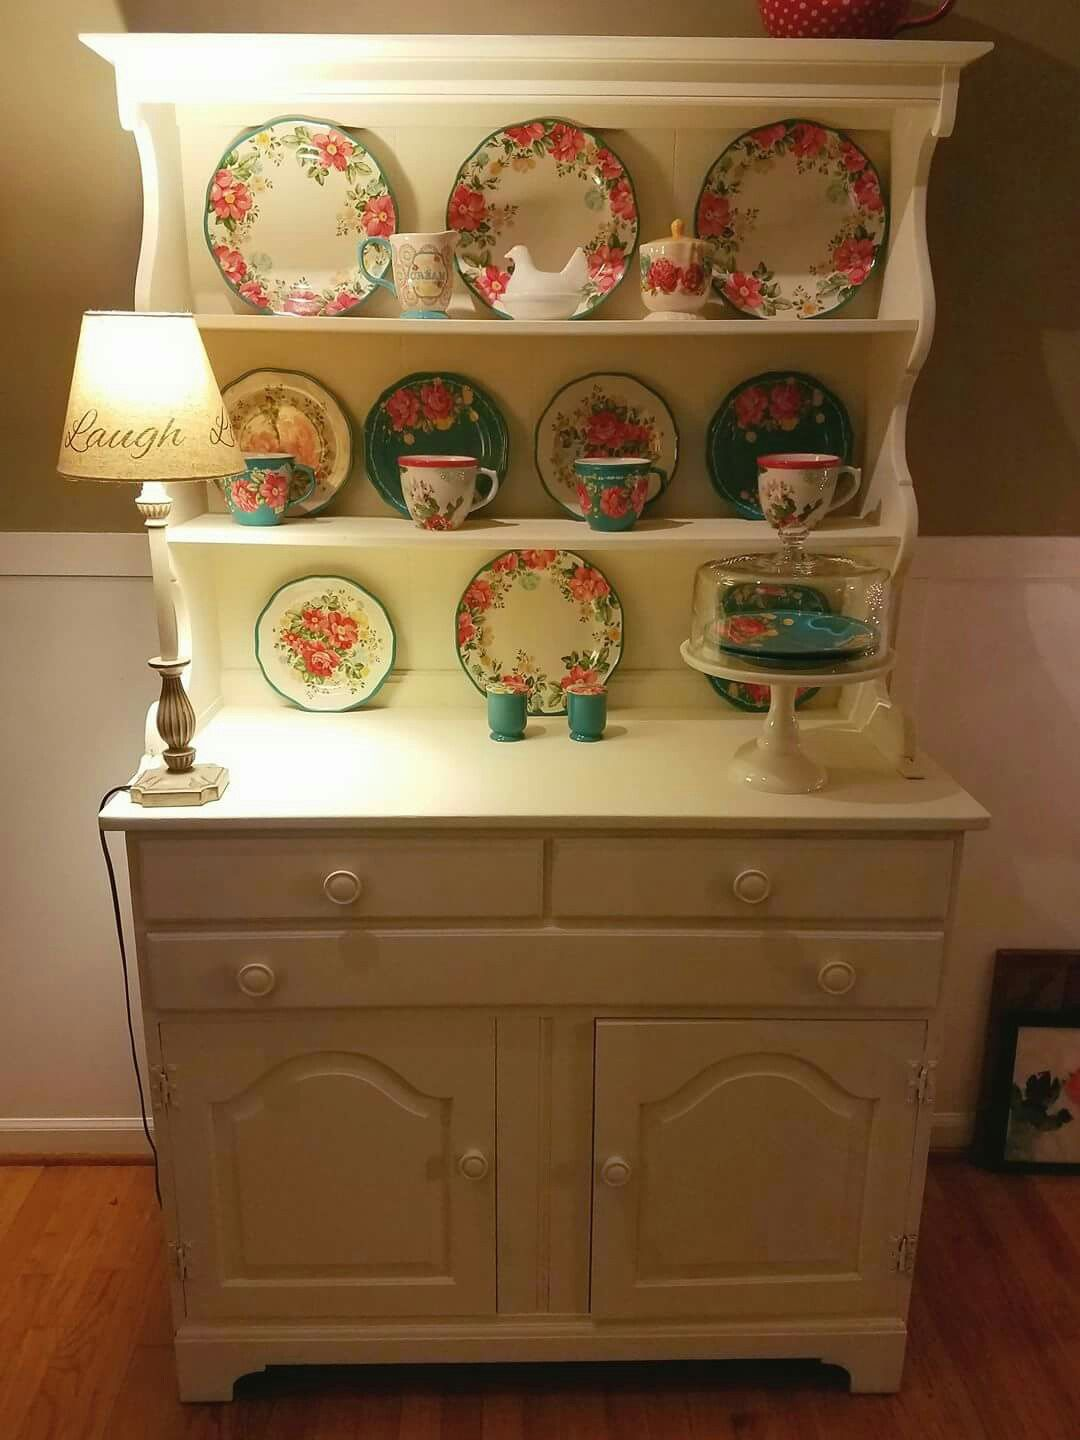 Pin By Kimberly Schilling On Pioneer Woman Pioneer Woman Kitchen Pioneer Woman Kitchen Decor